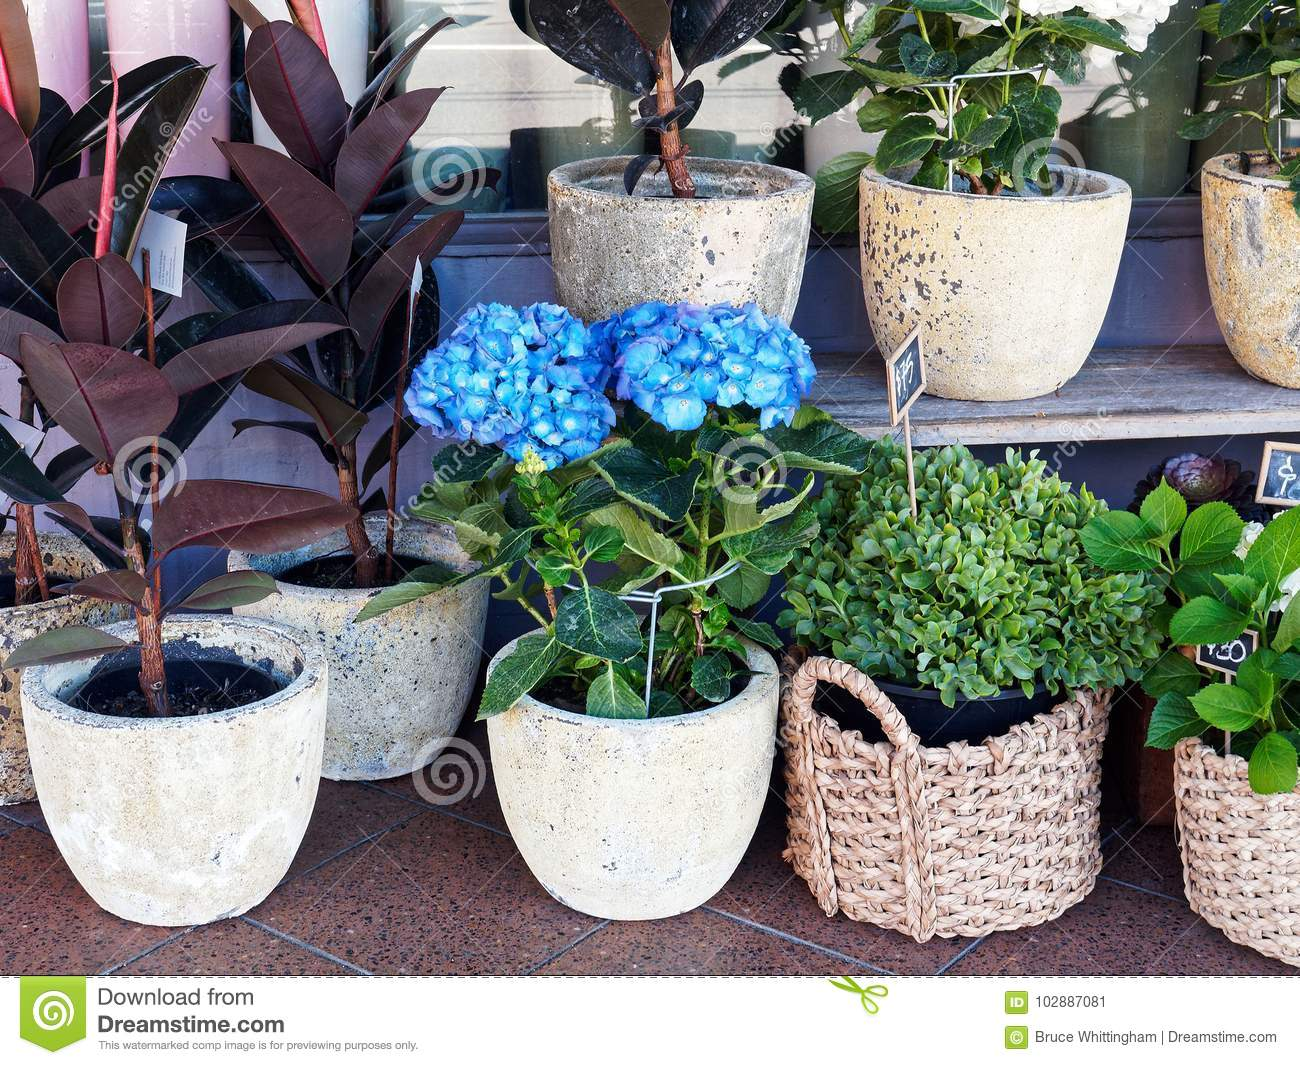 Flower Plants in Pots and Cane Baskets